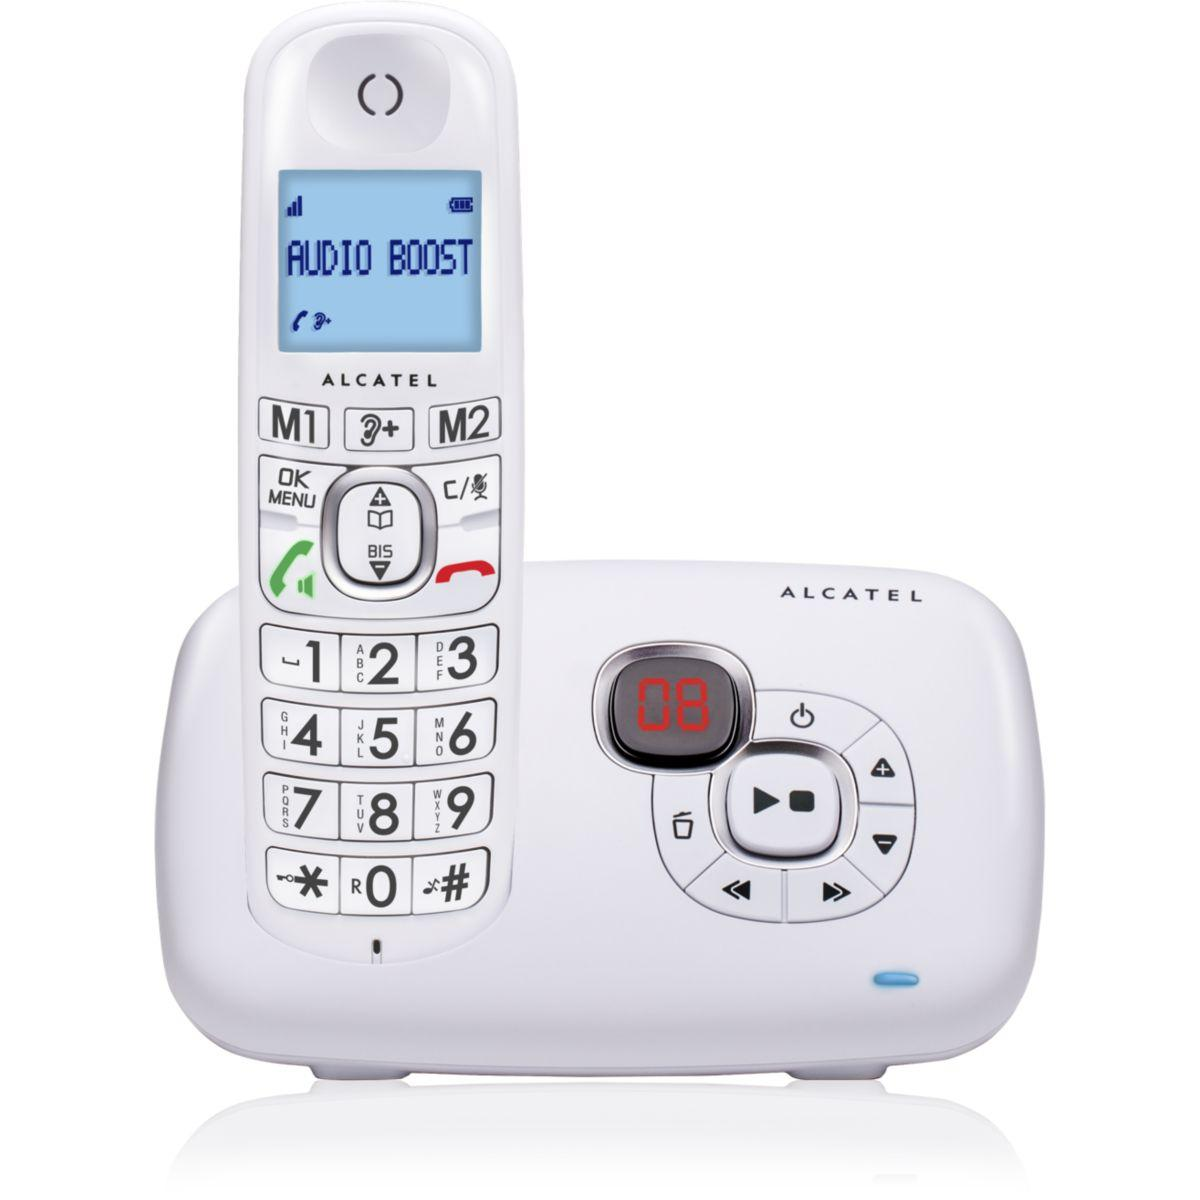 Scanner alcatel xl 385 voice blanc - 15% de remise immédiate avec le code : cool15 (photo)